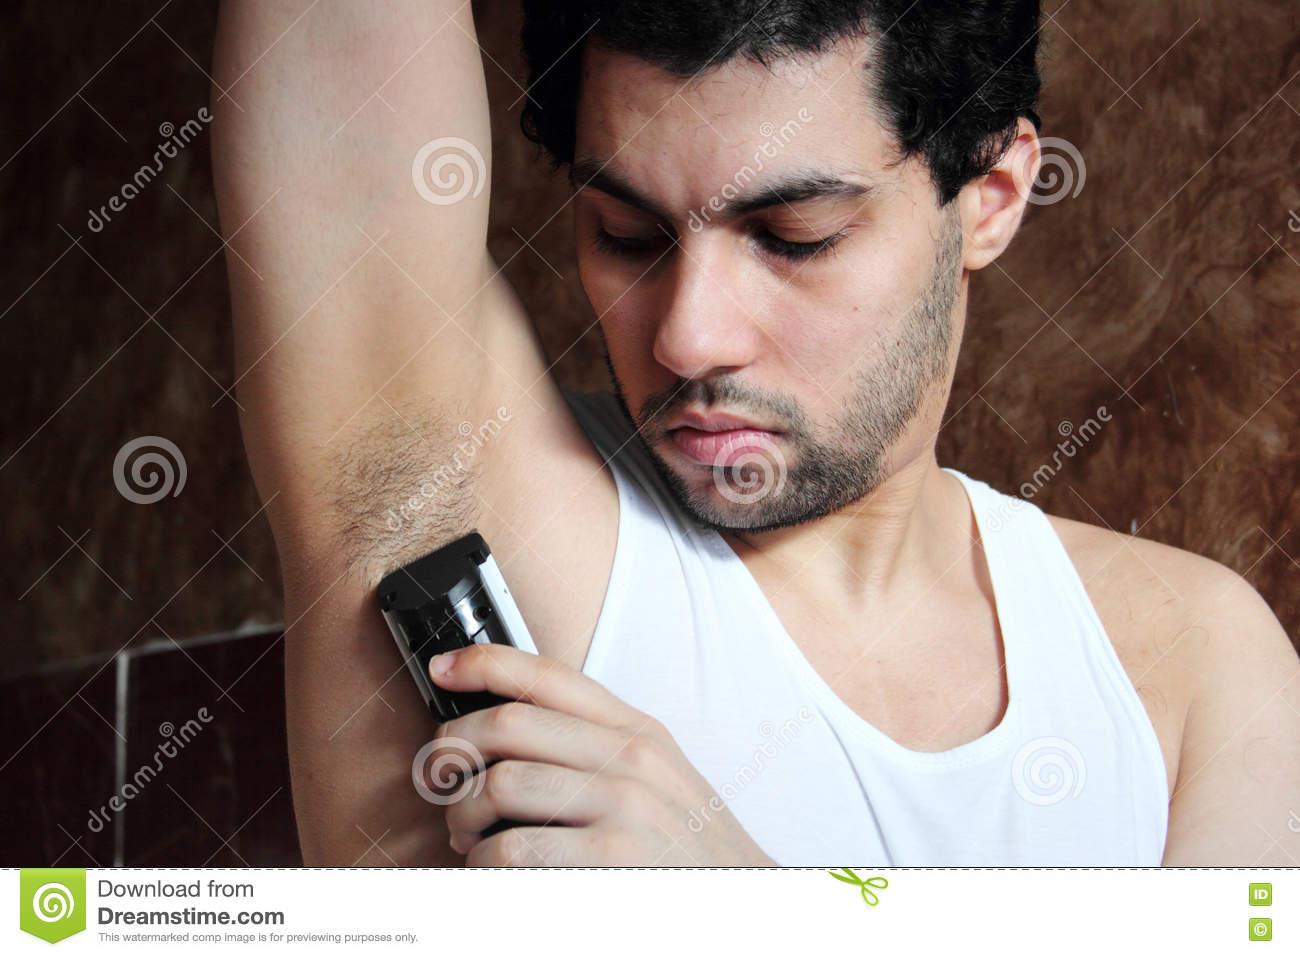 Arab Young Man Shaving Armpit Hair With Hair Clipper Stock